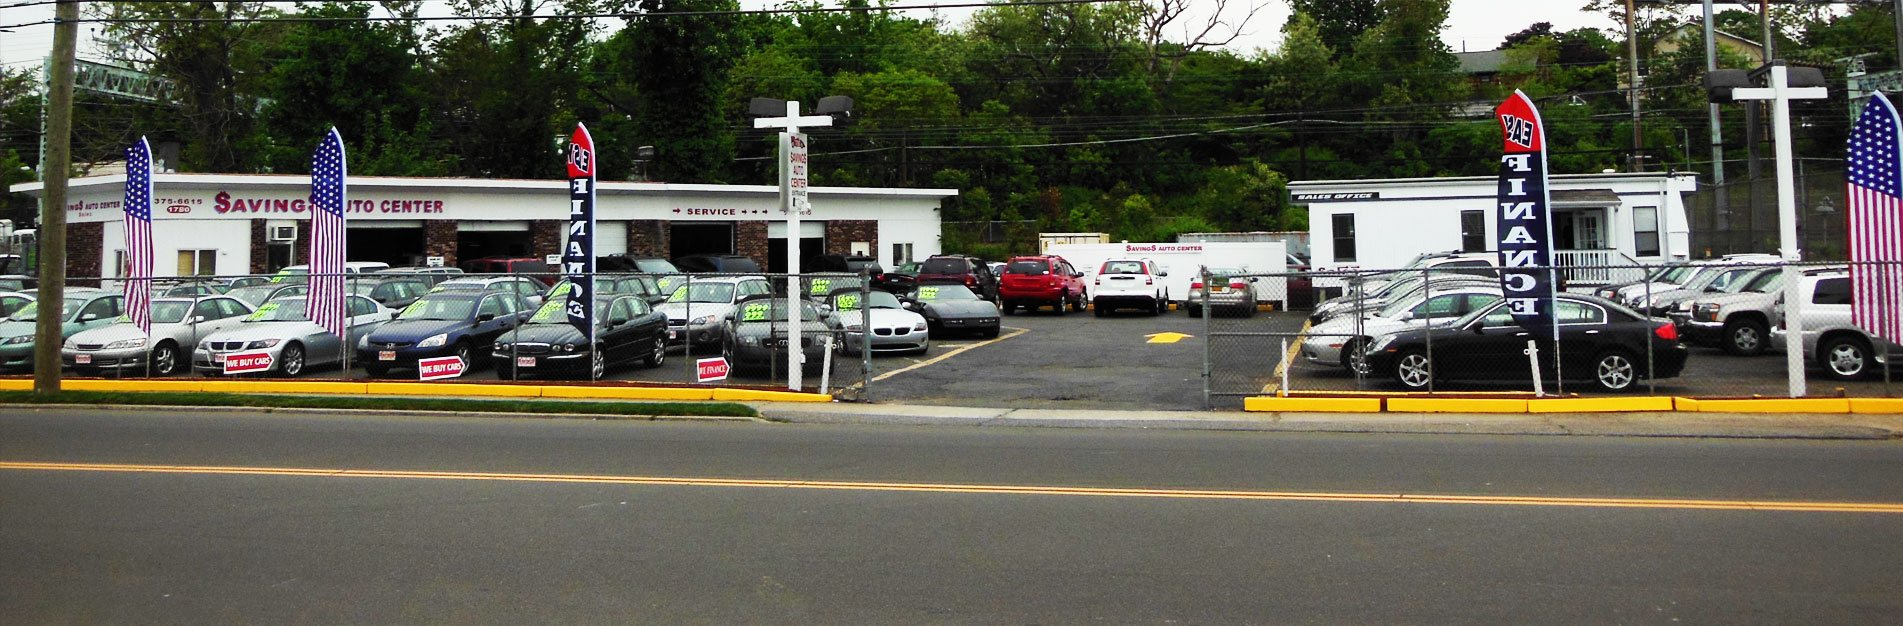 Used car dealer in Stratford, Bridgeport, Norwalk, Stratford, CT | Savings Auto Center